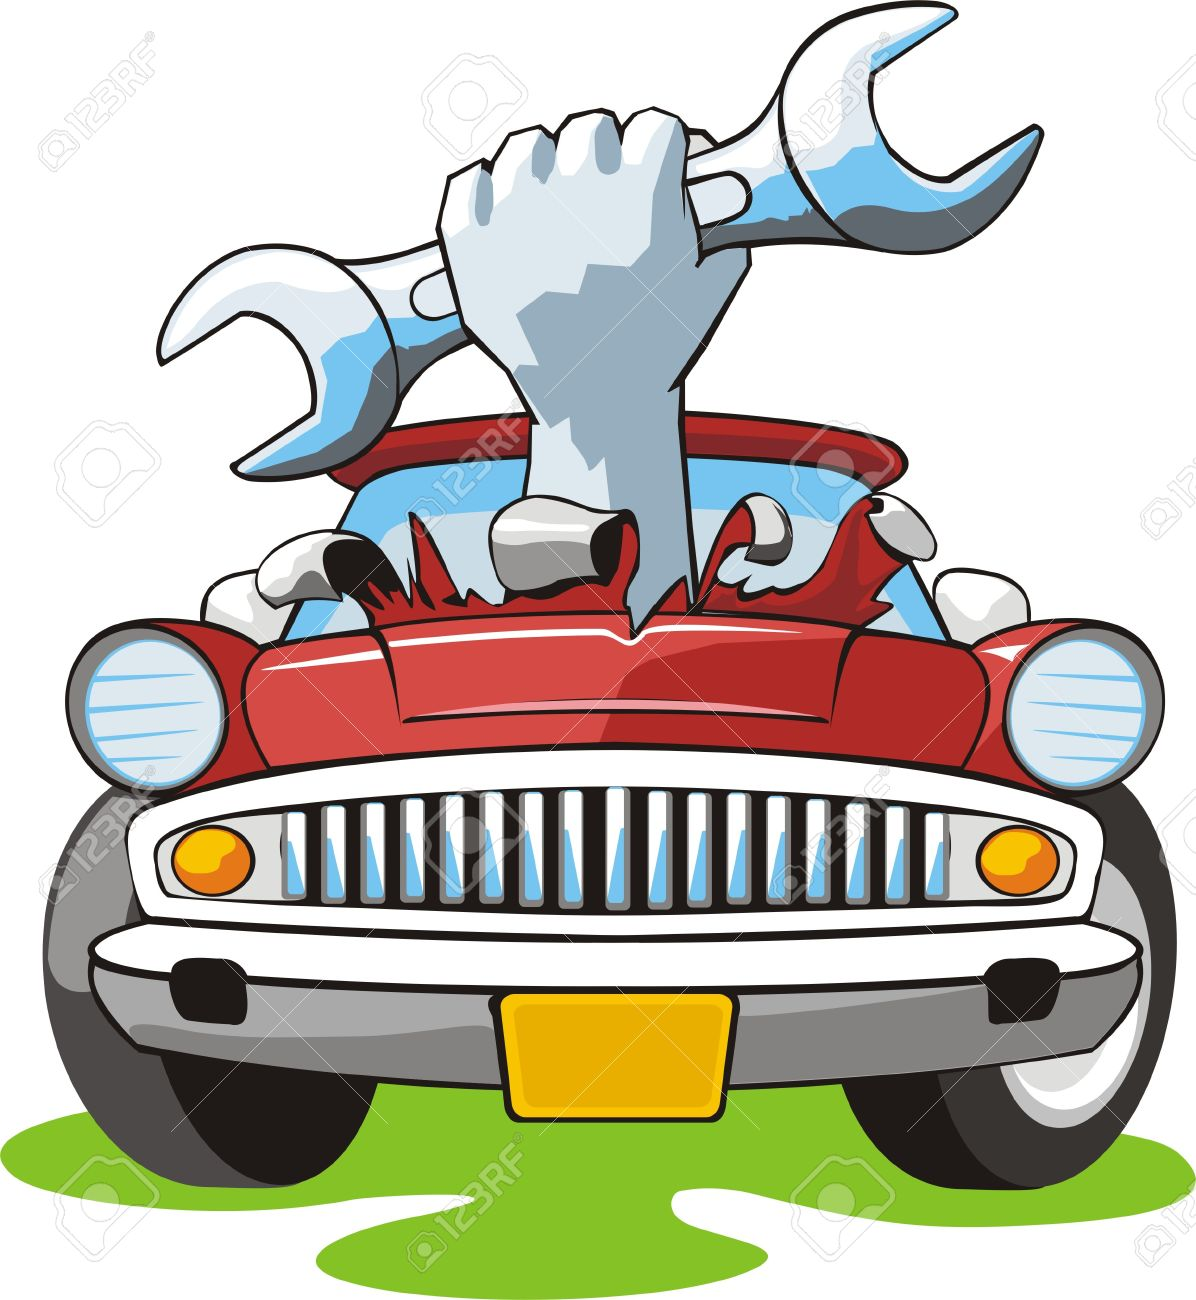 Automotive repair clipart 6 » Clipart Station.